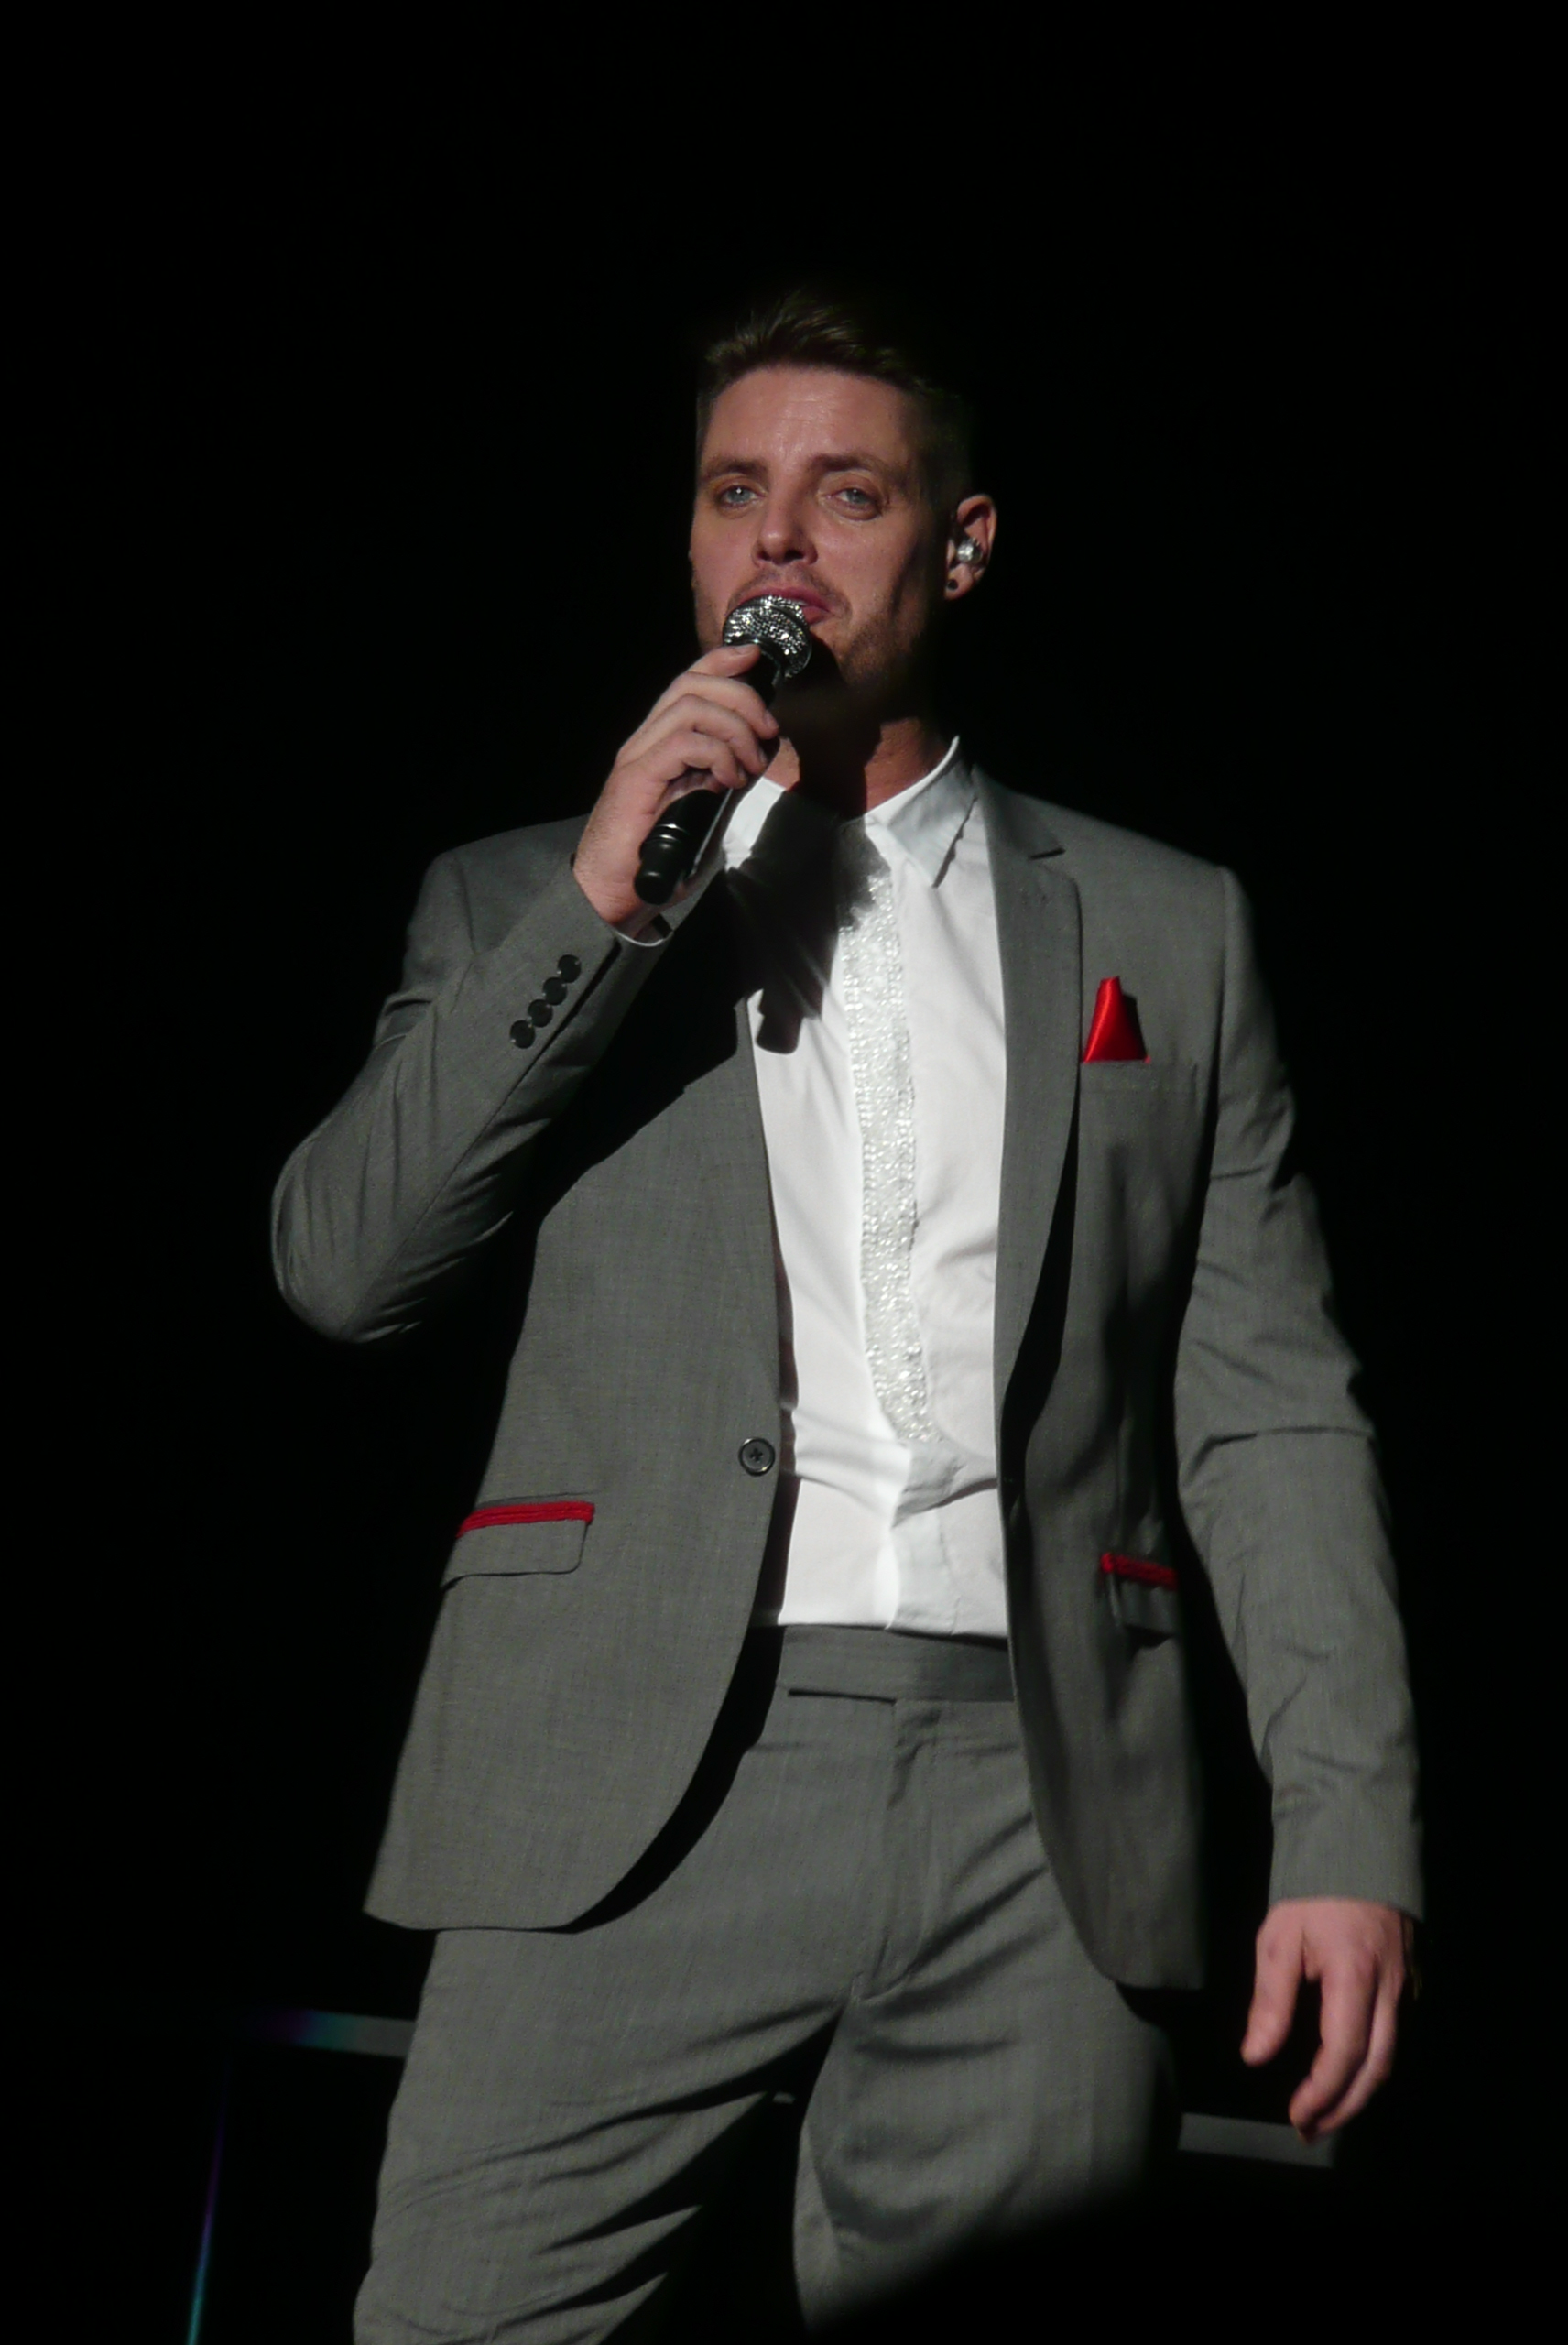 Autism capmpaigner, Boyzone's Keith Duffy honoured with philanthropist of the year award